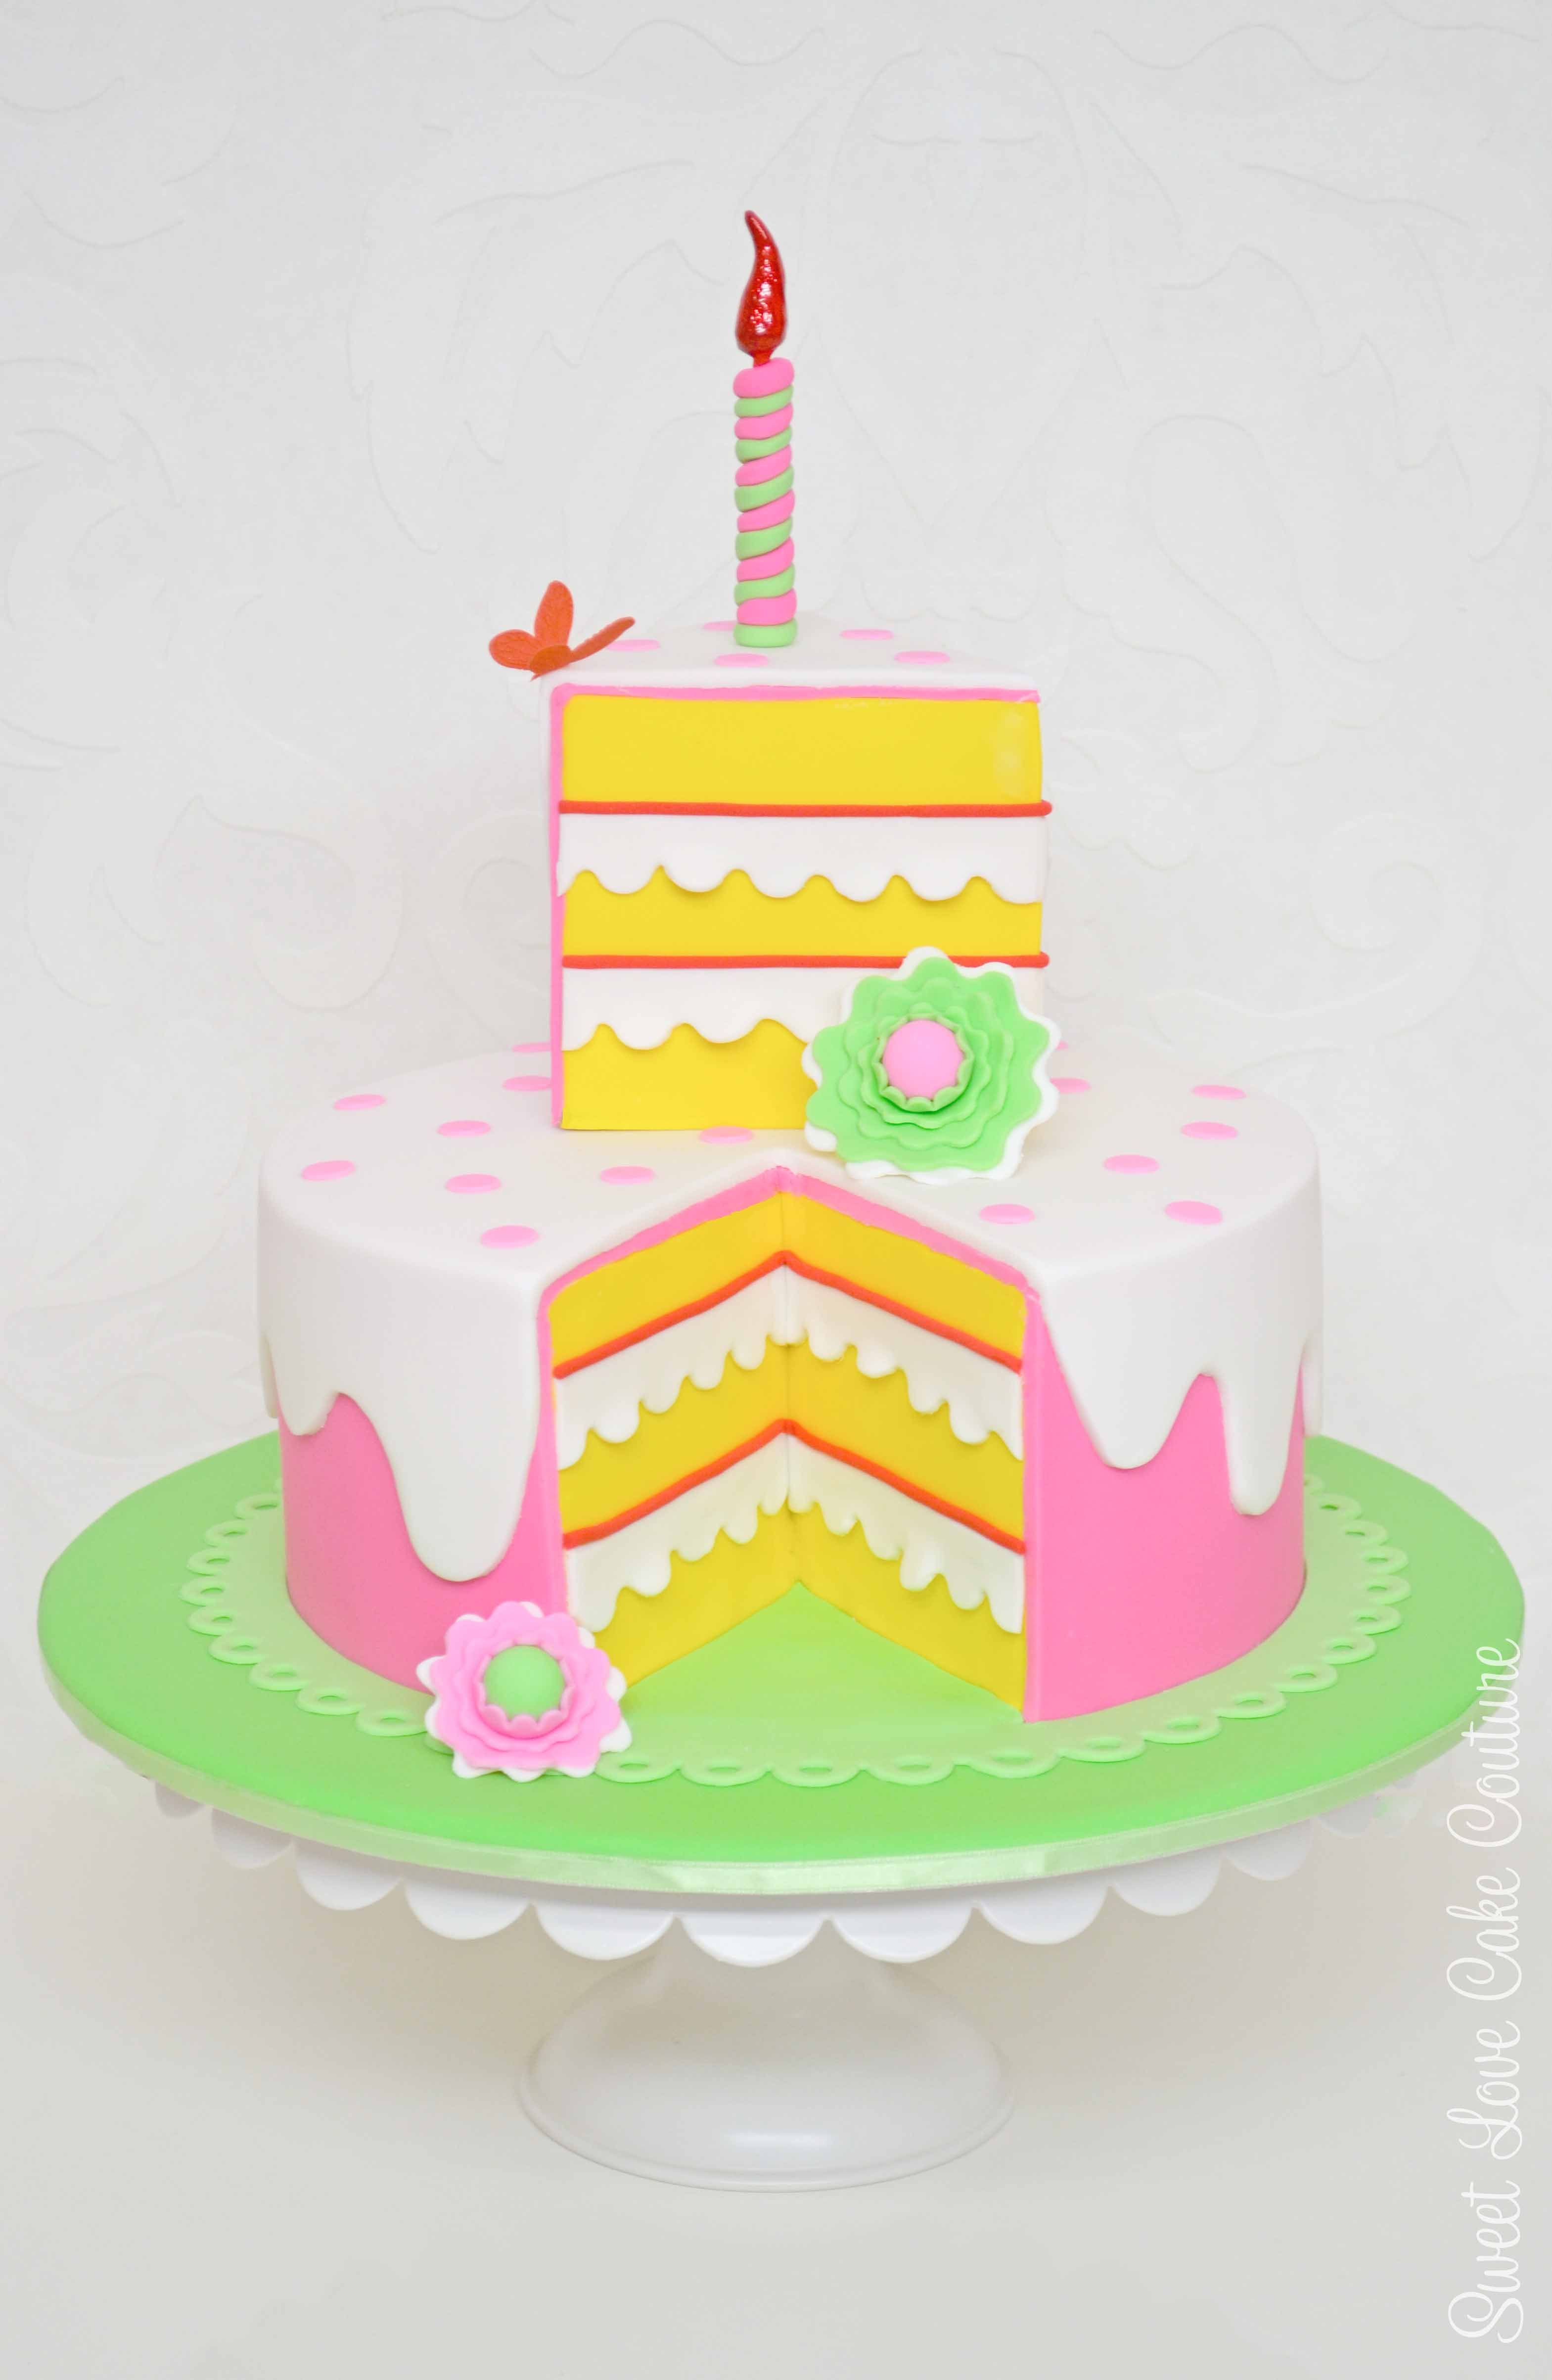 Cute and quirky with an extra special cake slice for the birthday girl